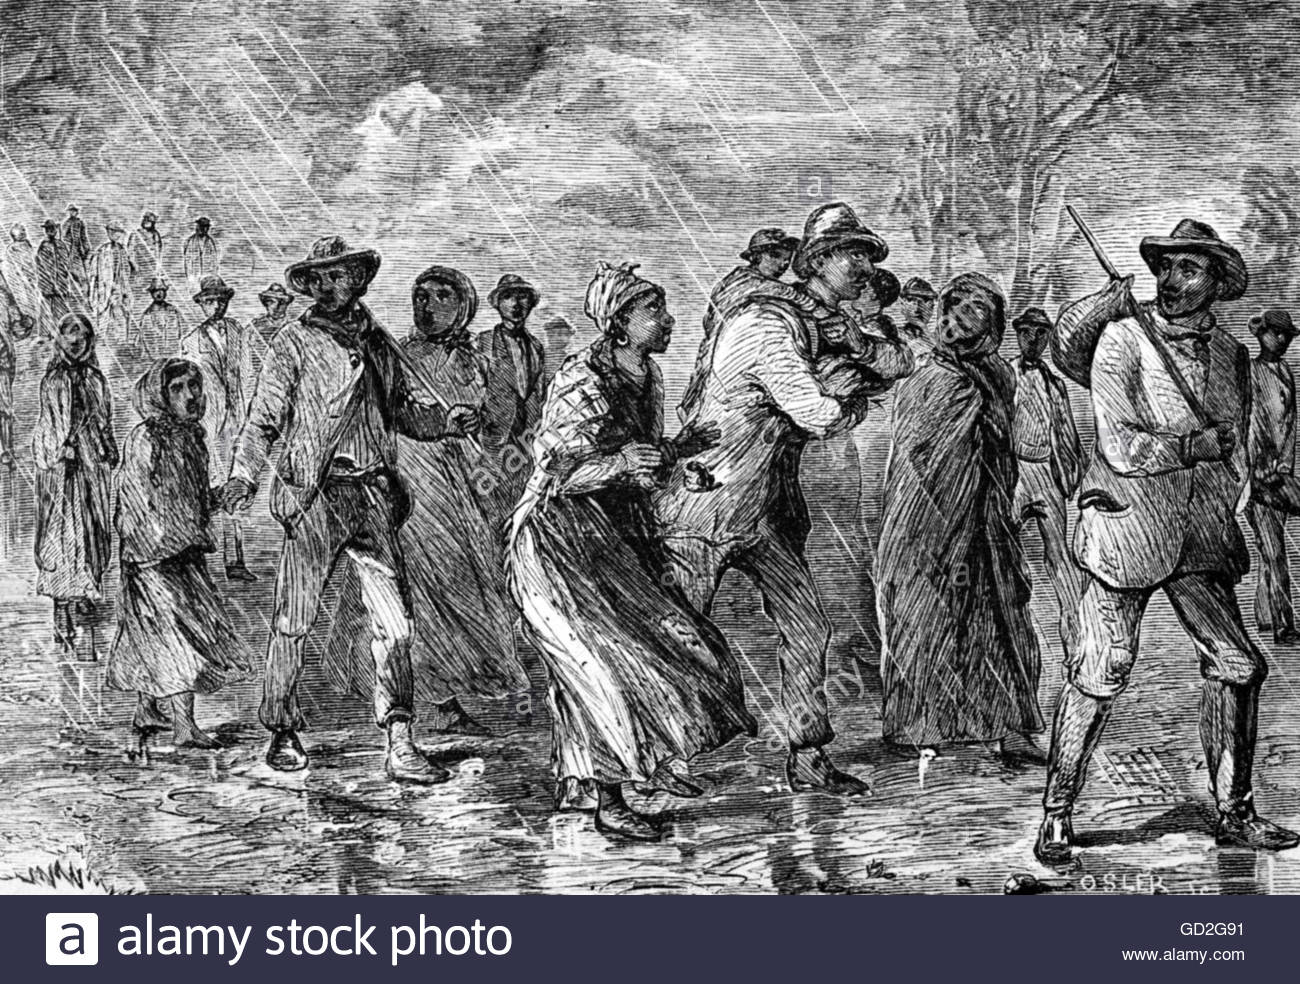 Underground Railroad Pictures A Station Of The: Underground Railroad Slavery Stock Photos & Underground